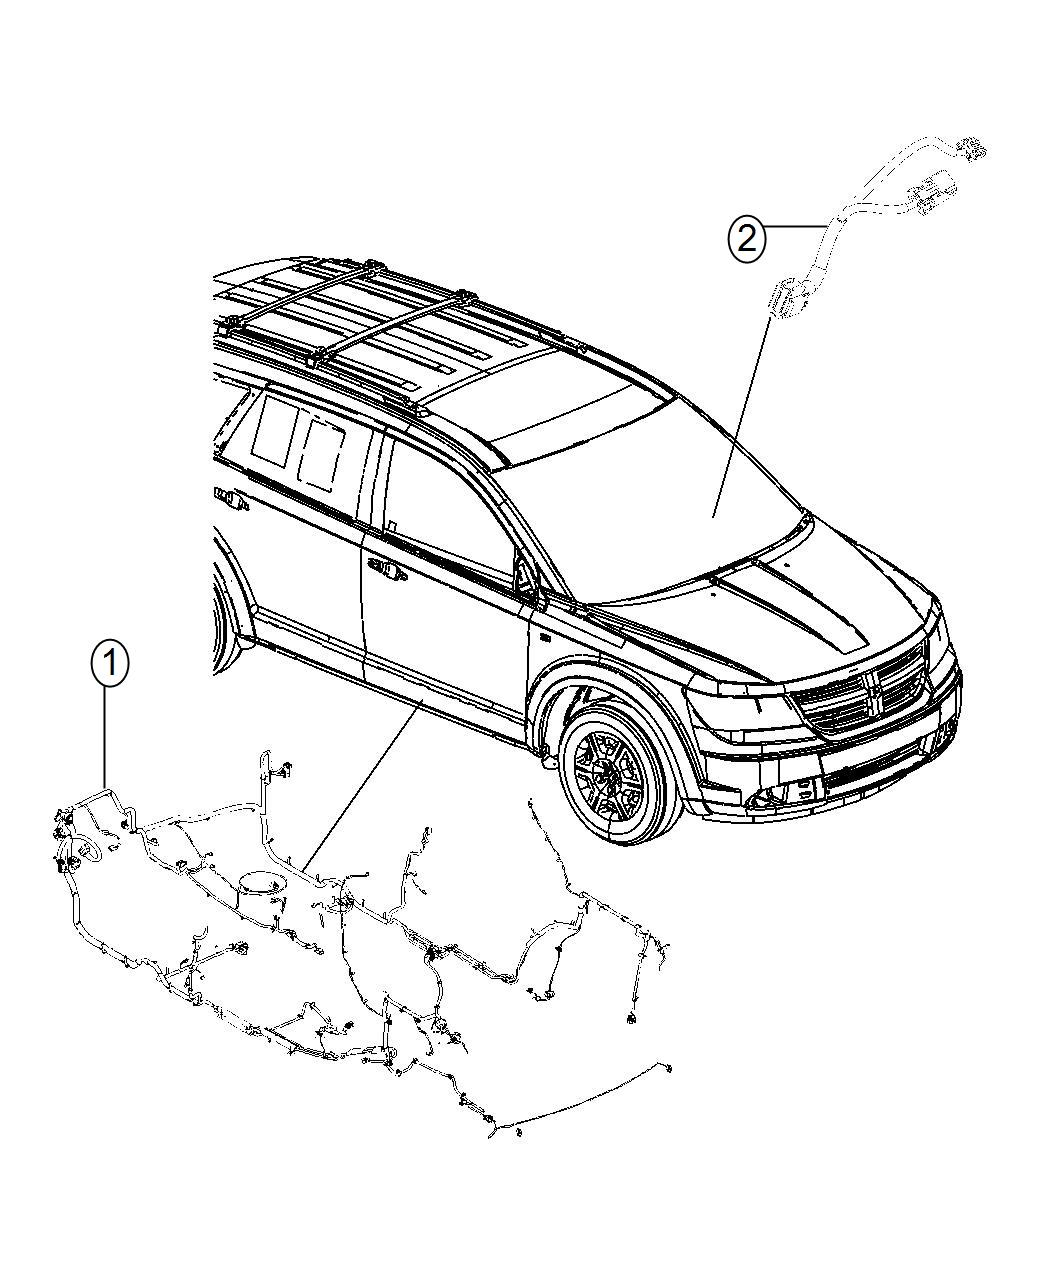 Dodge Journey Wiring. Unified body. Active, protection